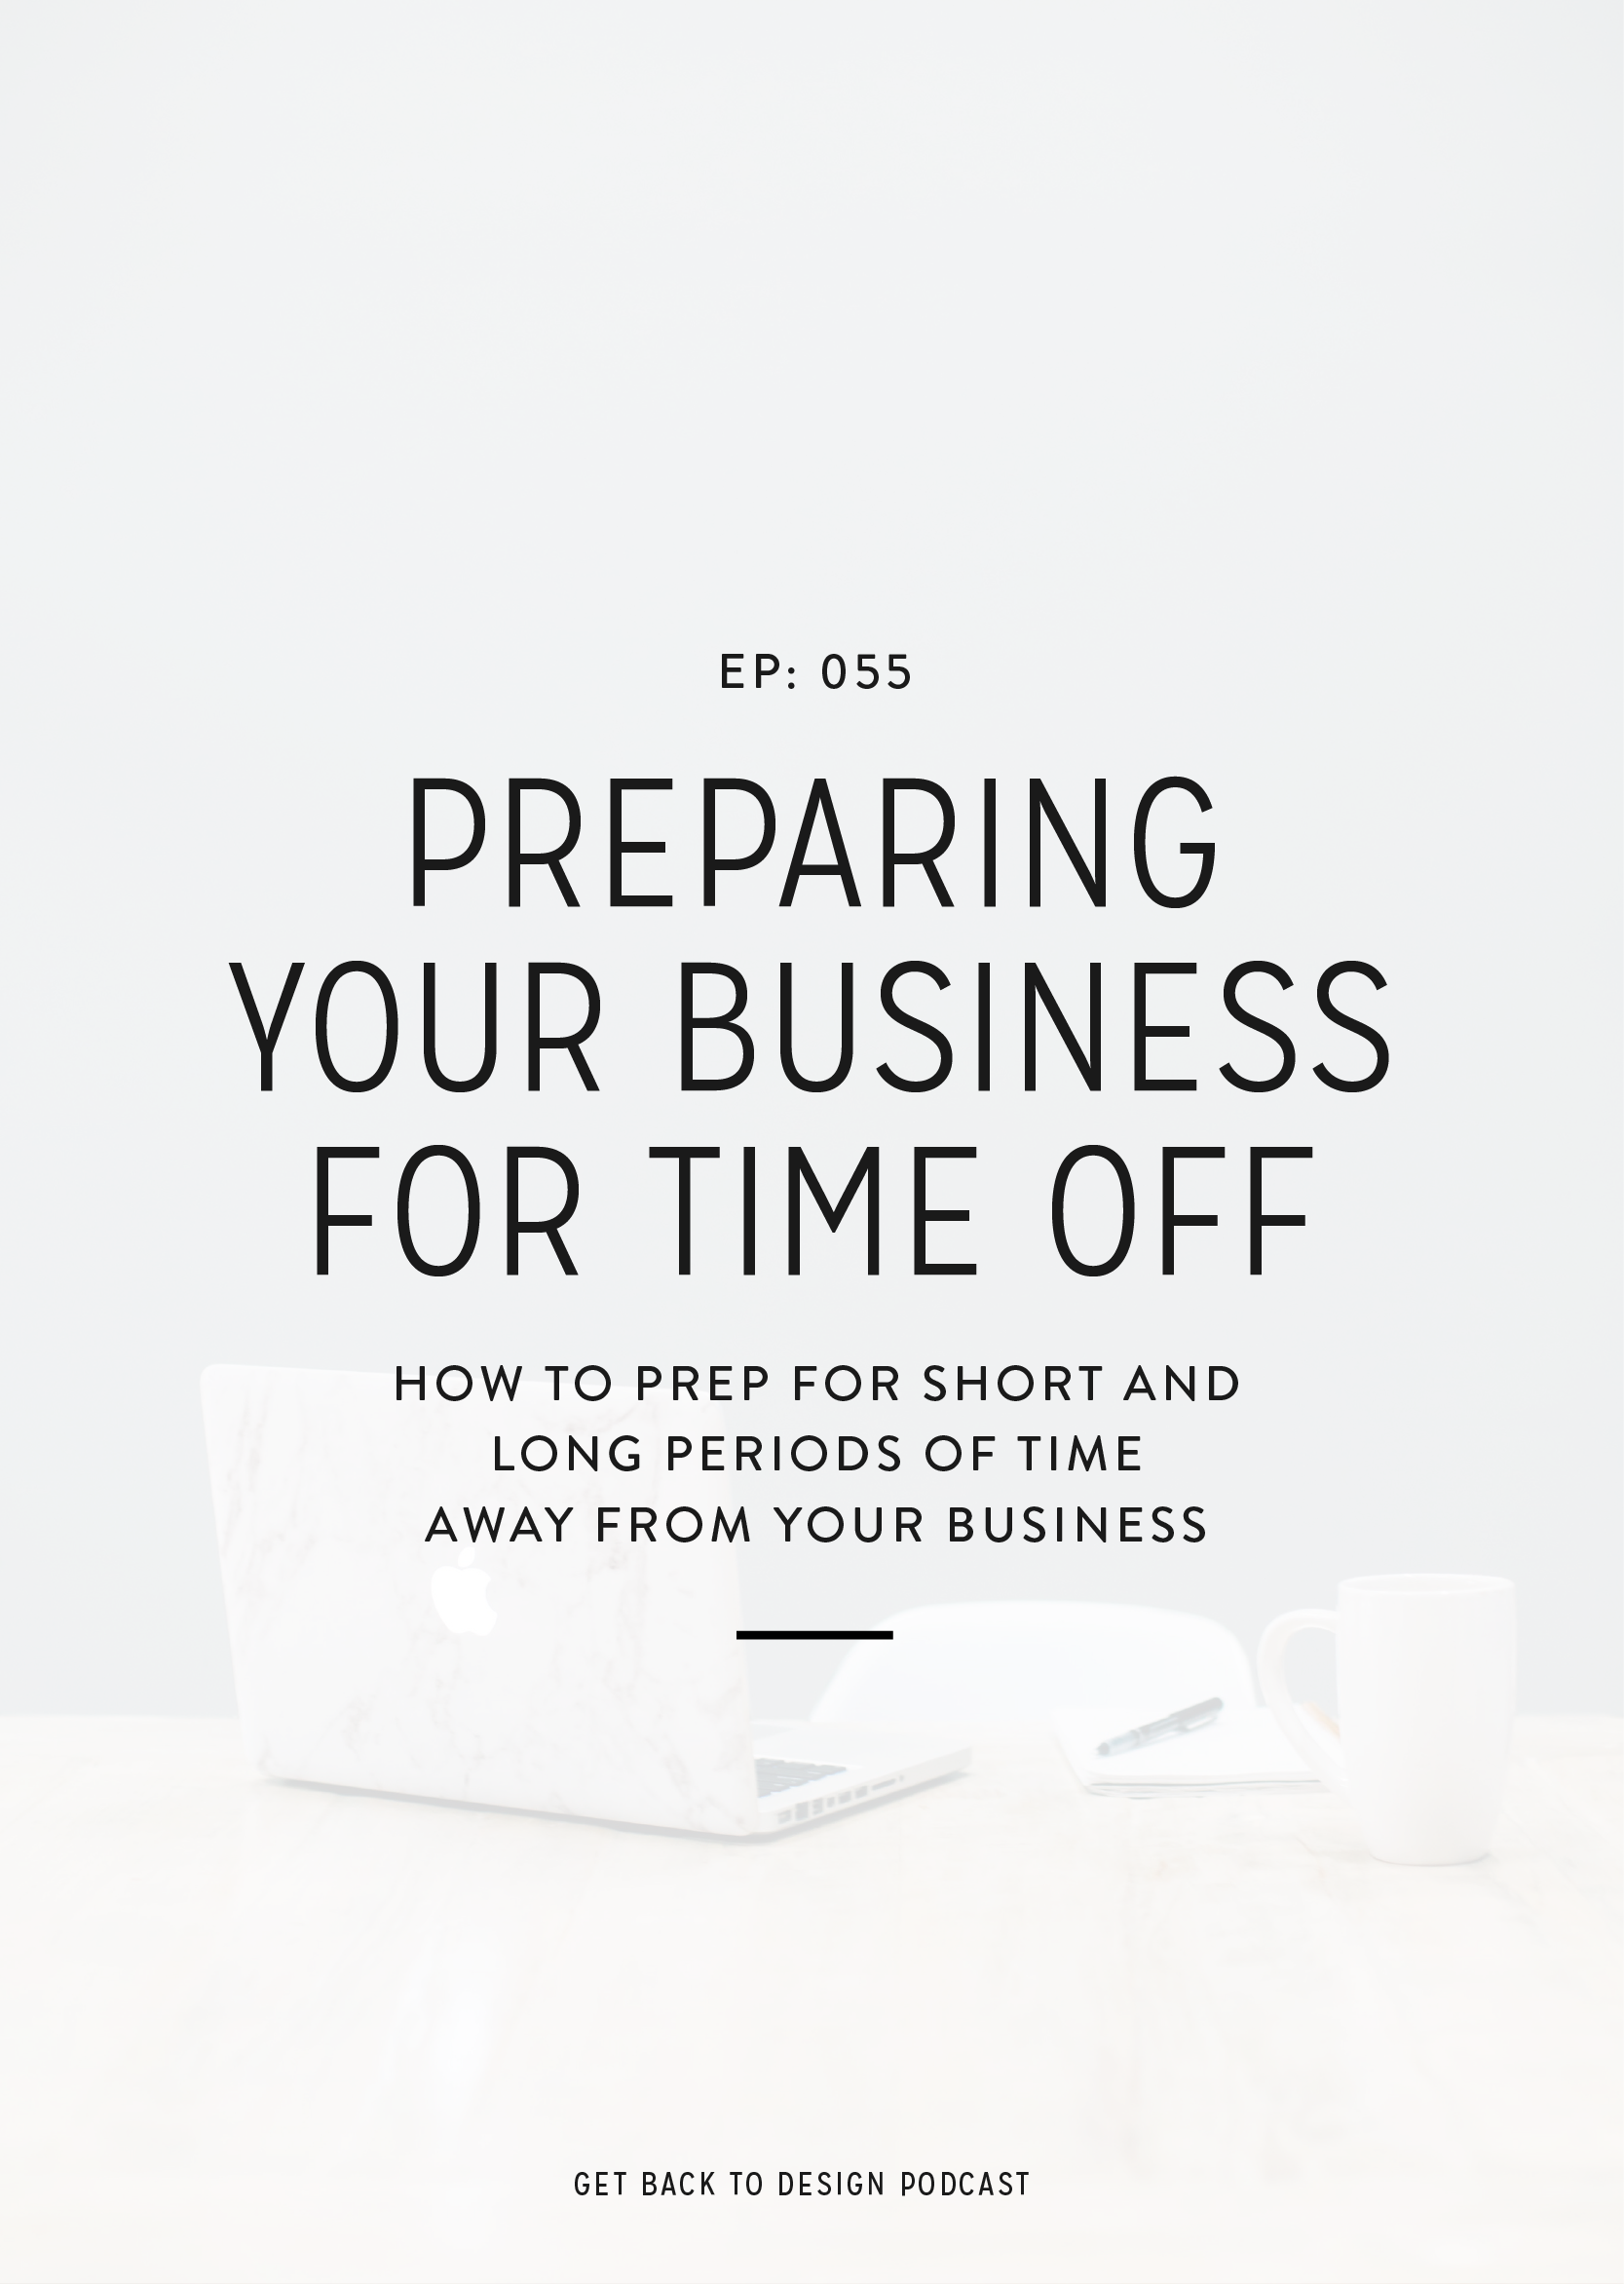 At some point when you have your own business you'll need to take some time off. In this episode, we'll go over how to prep for short and long periods of time away from your business.